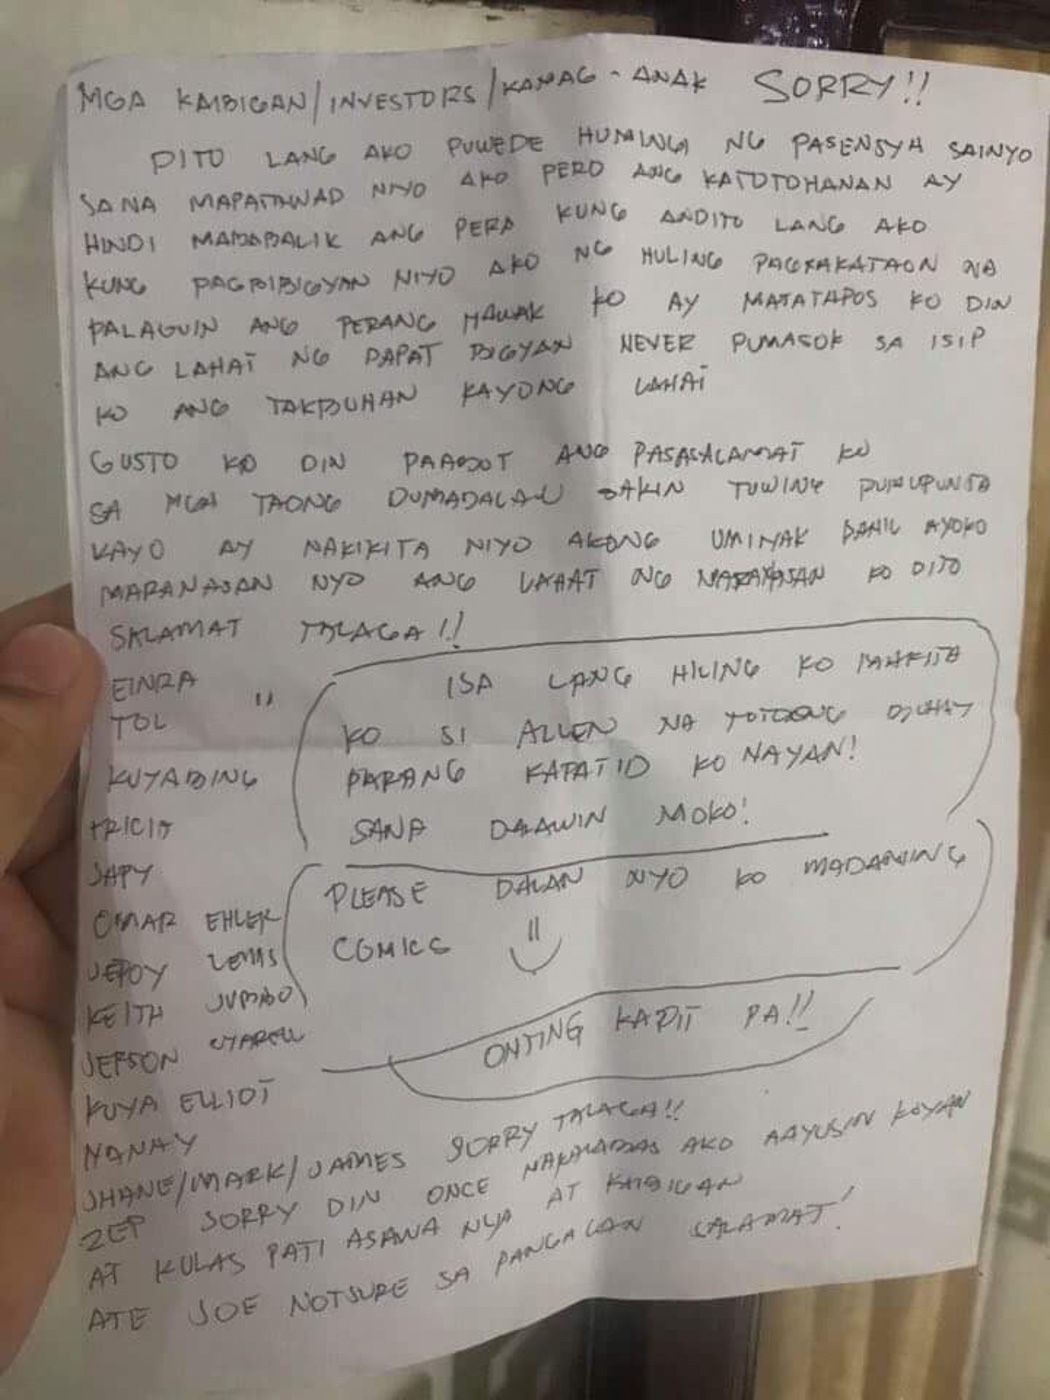 PERSONAL LETTER. Alleged scam mastermind Arnel Ordonio writes a letter to his investors. Sourced photo